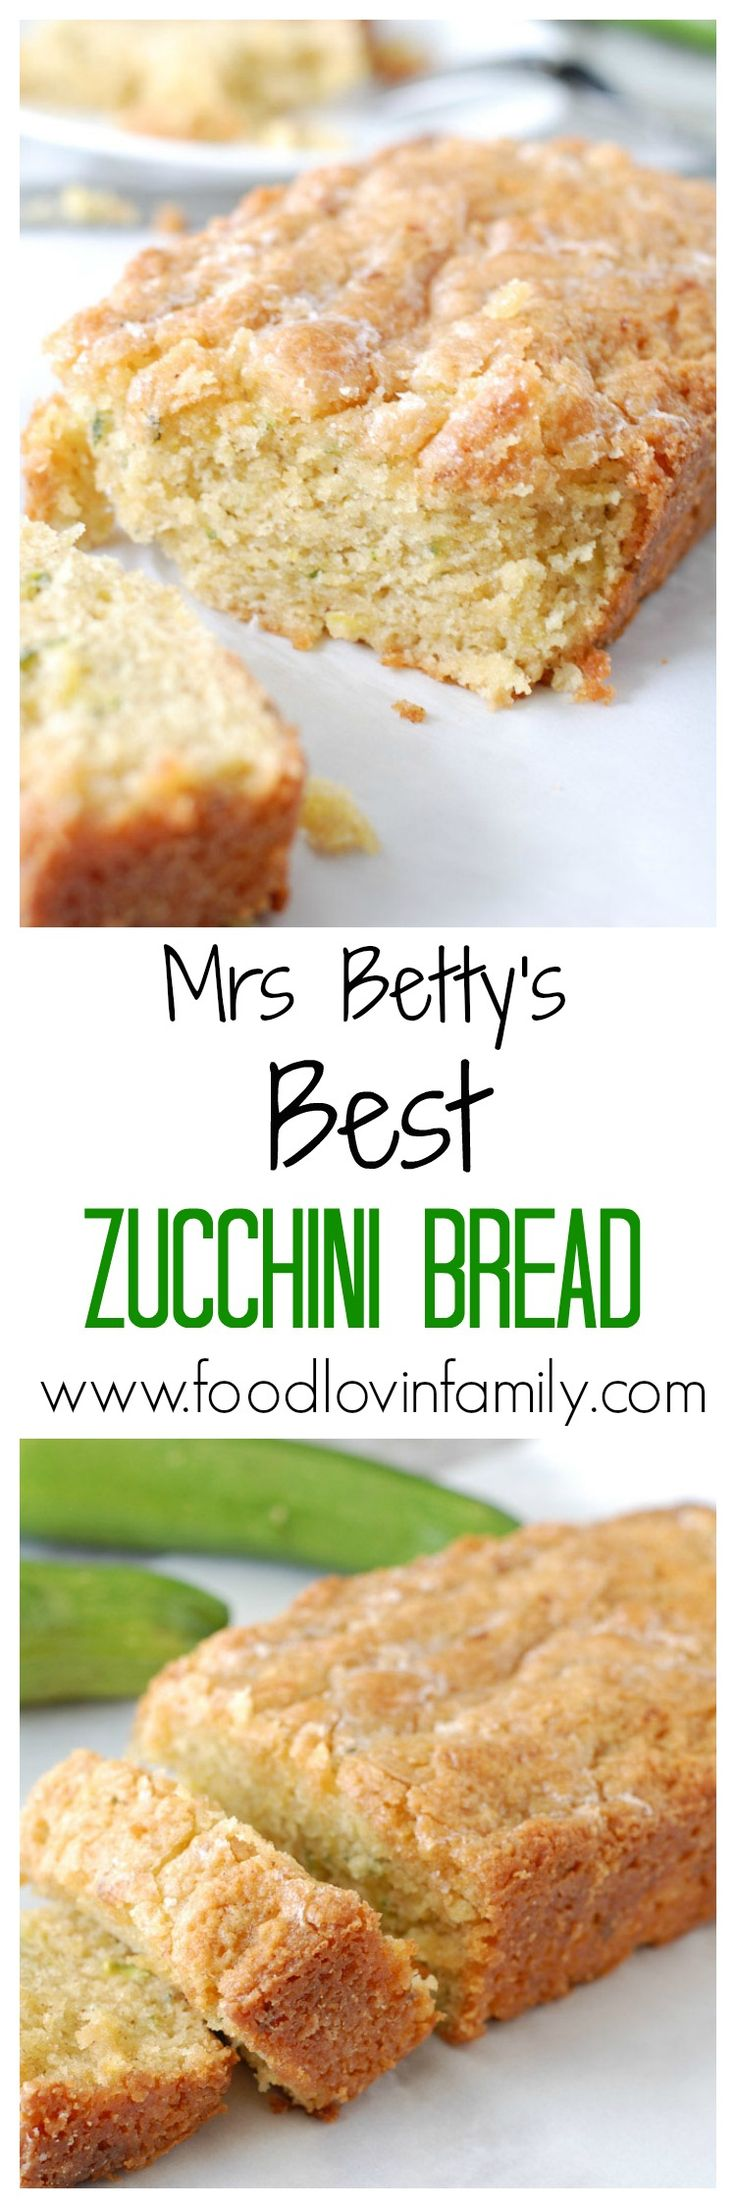 Mrs. Betty makes THE BEST Zucchini Bread and uses a secret ingredient to add moisture and flavor. This recipe is the best zucchini bread you will make! Have it with coffee for breakfast. Yum! http://www.foodlovinfamily.com/mrs-bettys-best-zucchini-bread/